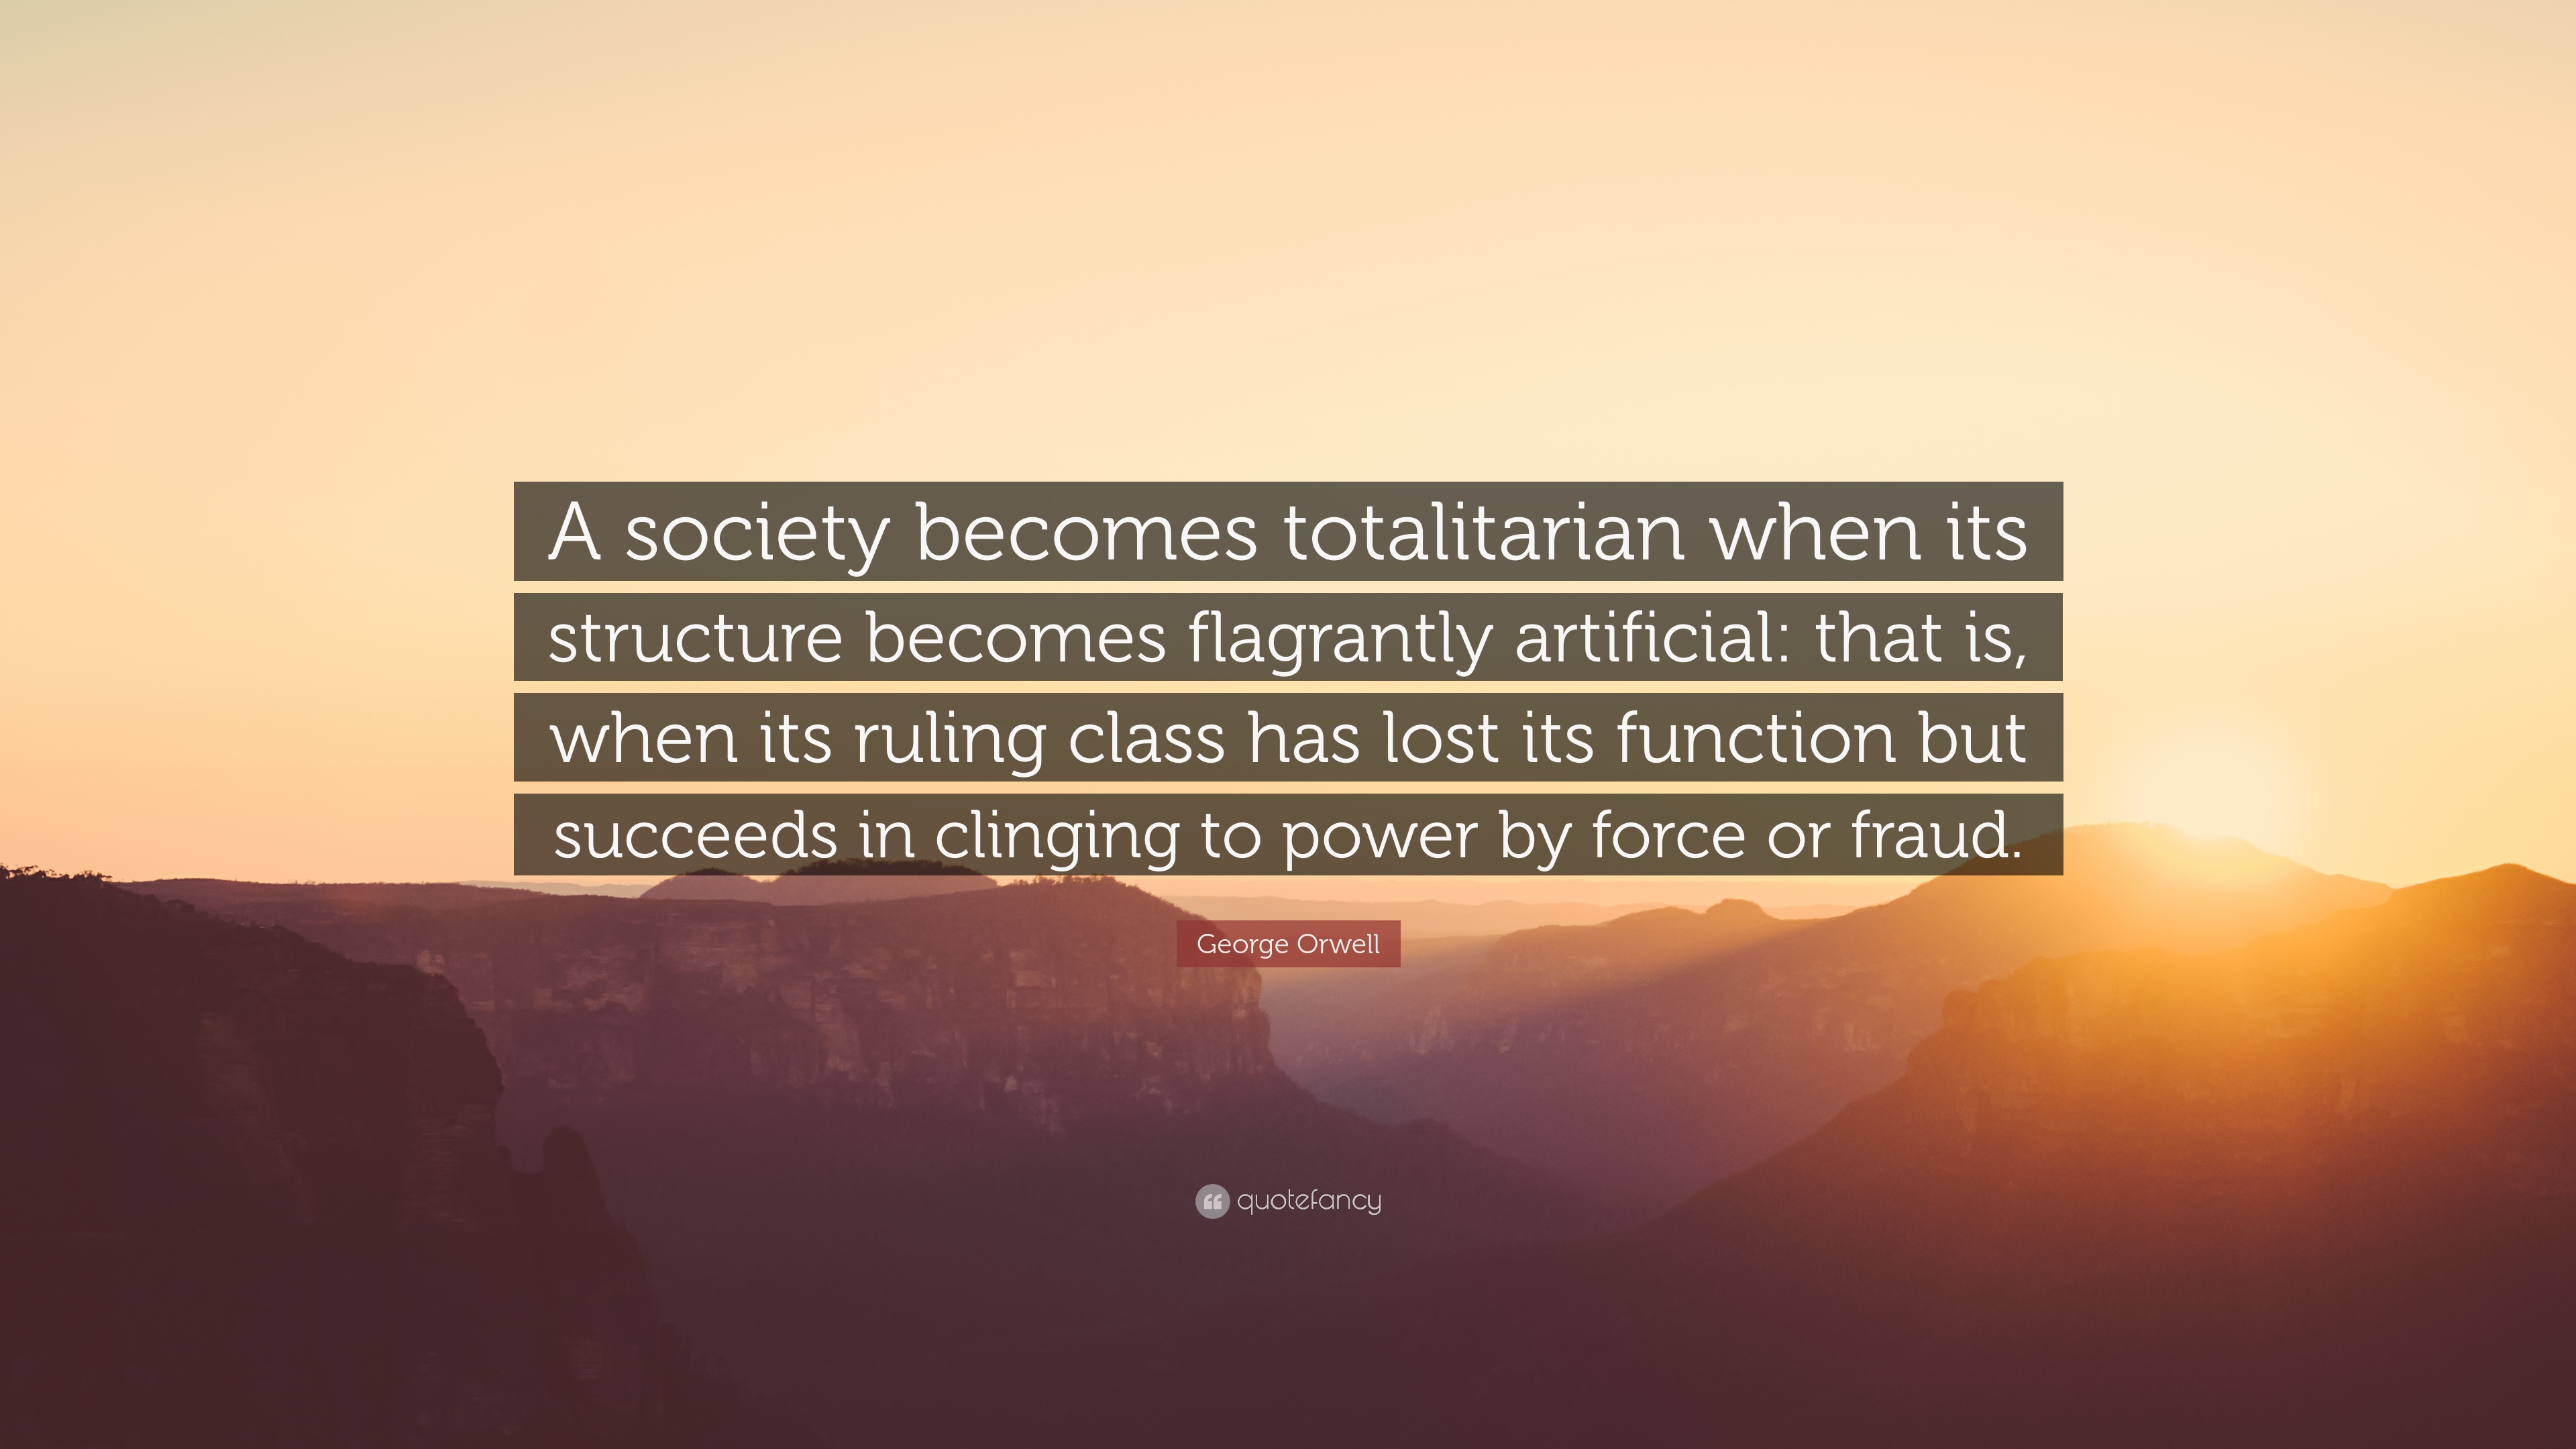 totalitarianism and power george orwell essay Orwell and totalitarianism at the behest of the duchess of atholl, george orwell (1903-1950) spoke at the league for european freedom, a neo-conservative forum with whom the celebrated author shared a distinct disdain for communism.